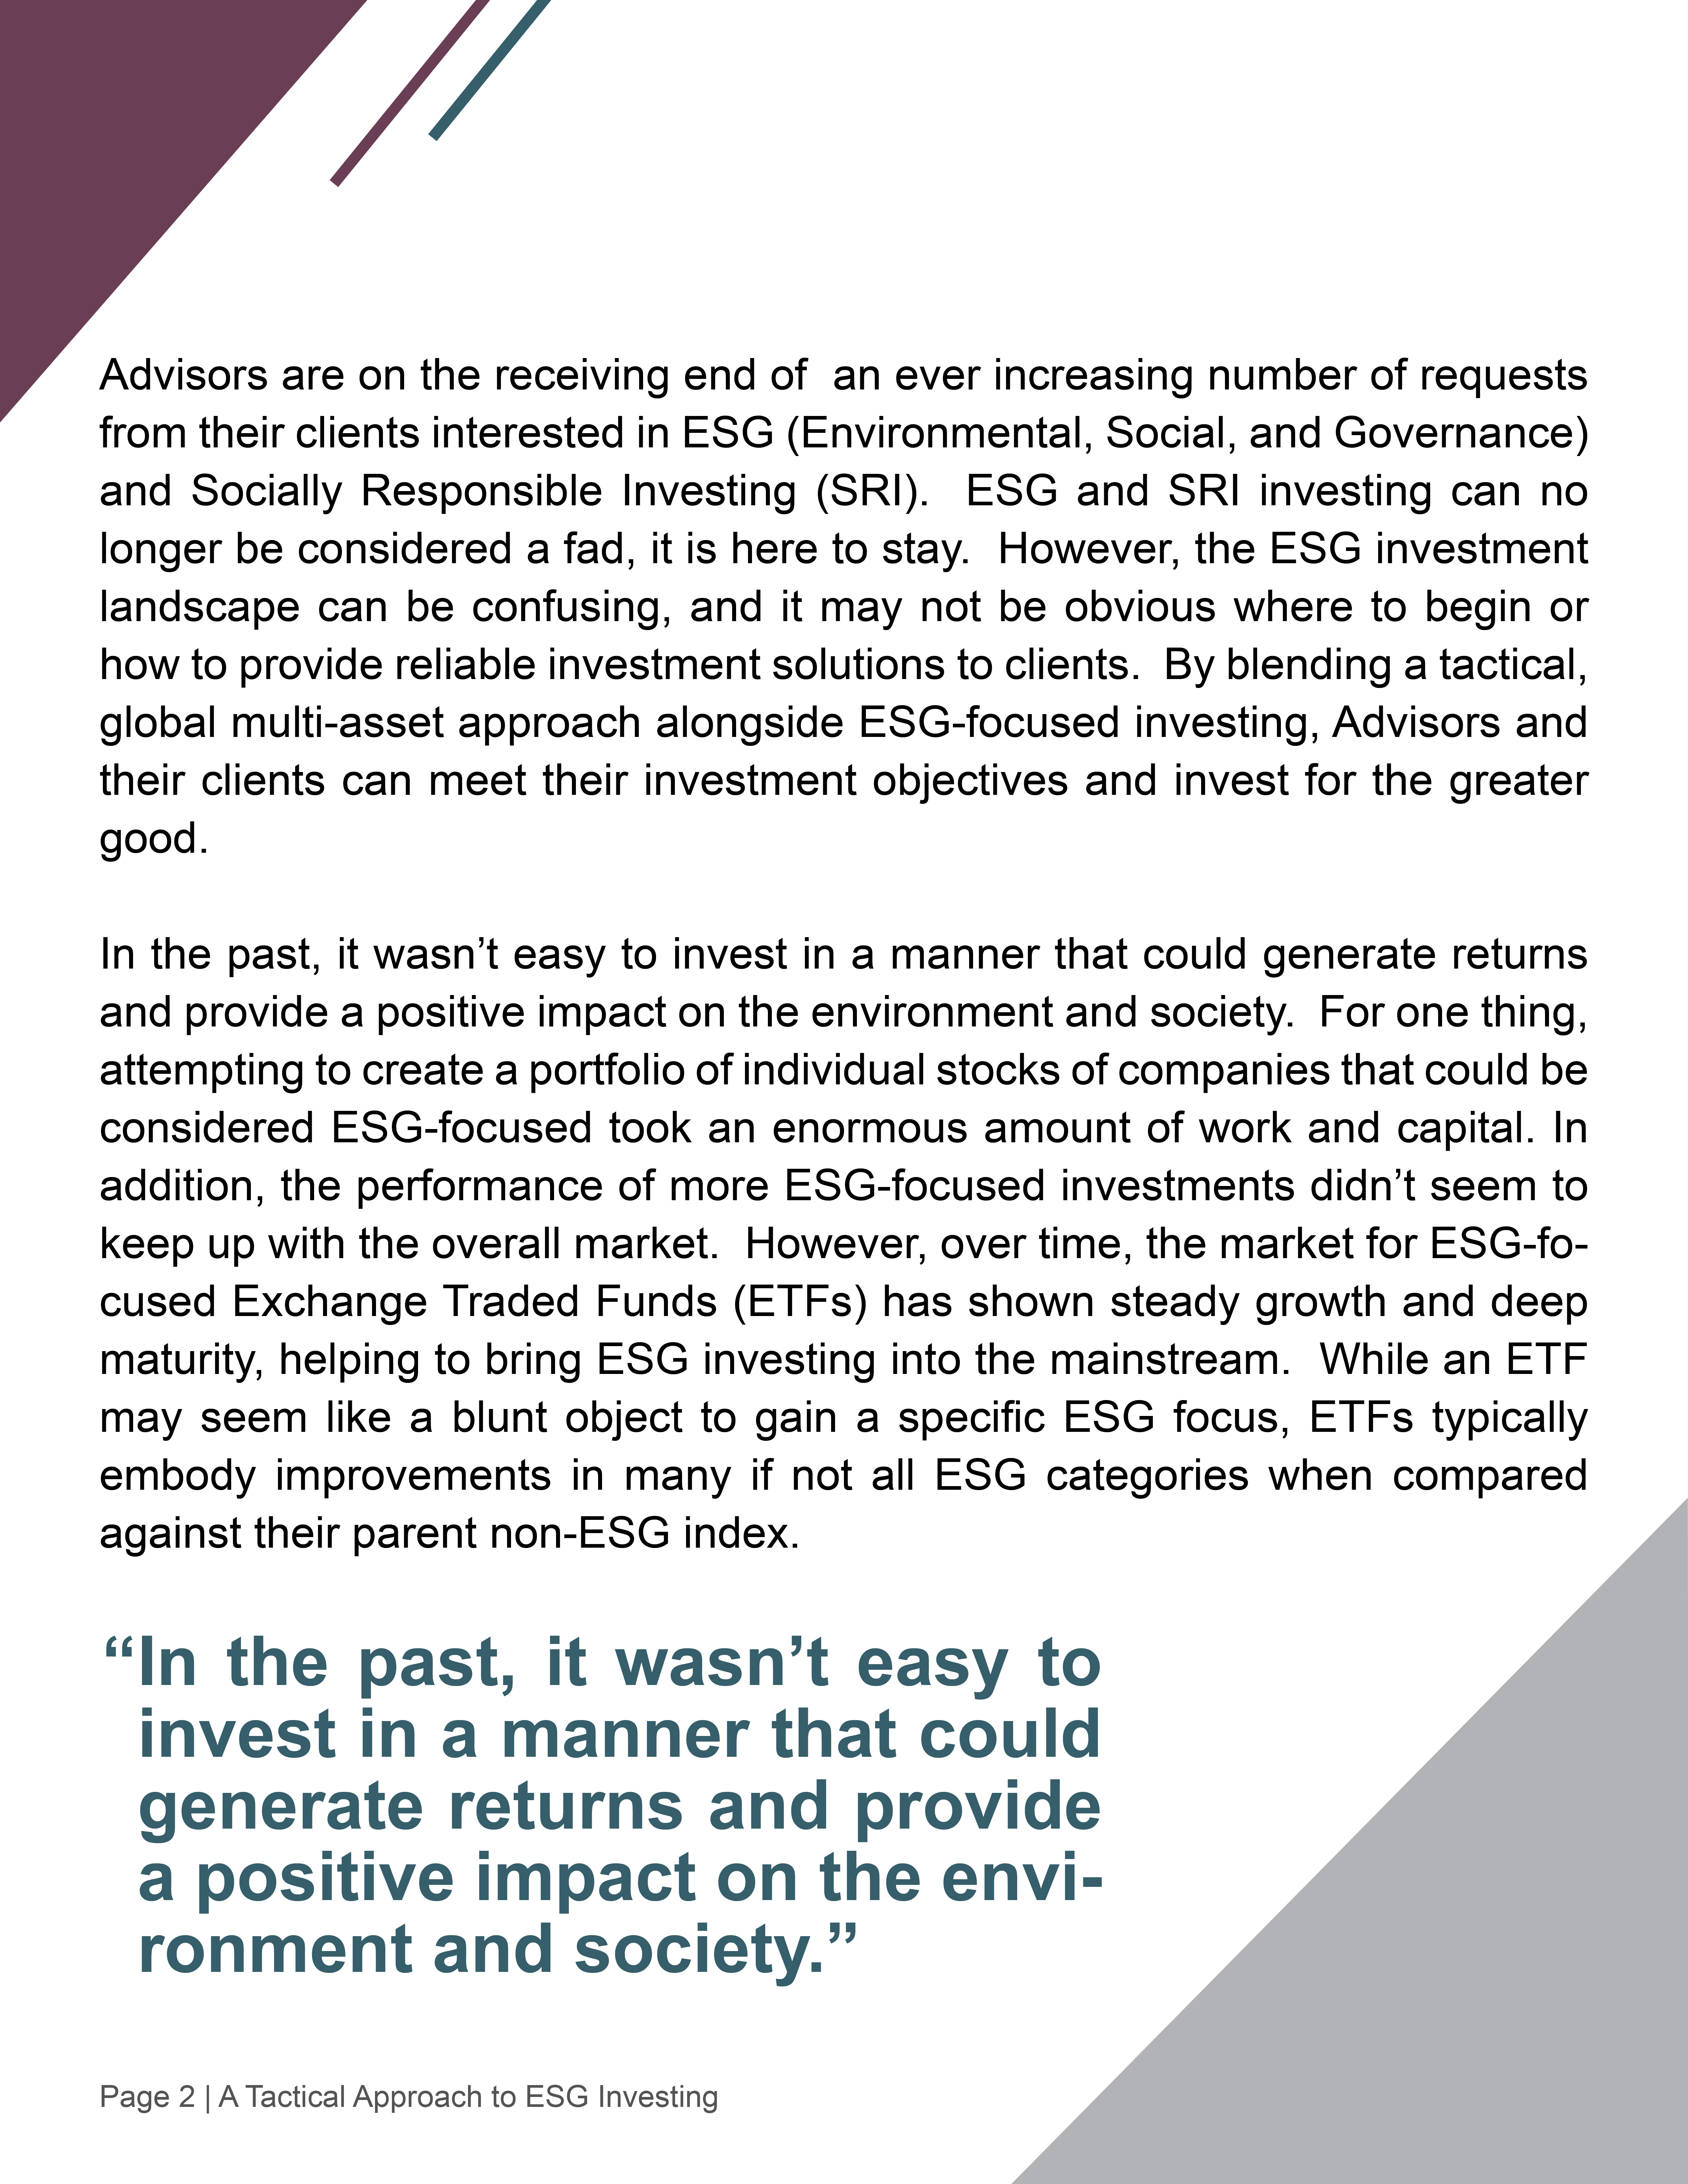 A Tactical Approach to ESG Investing2